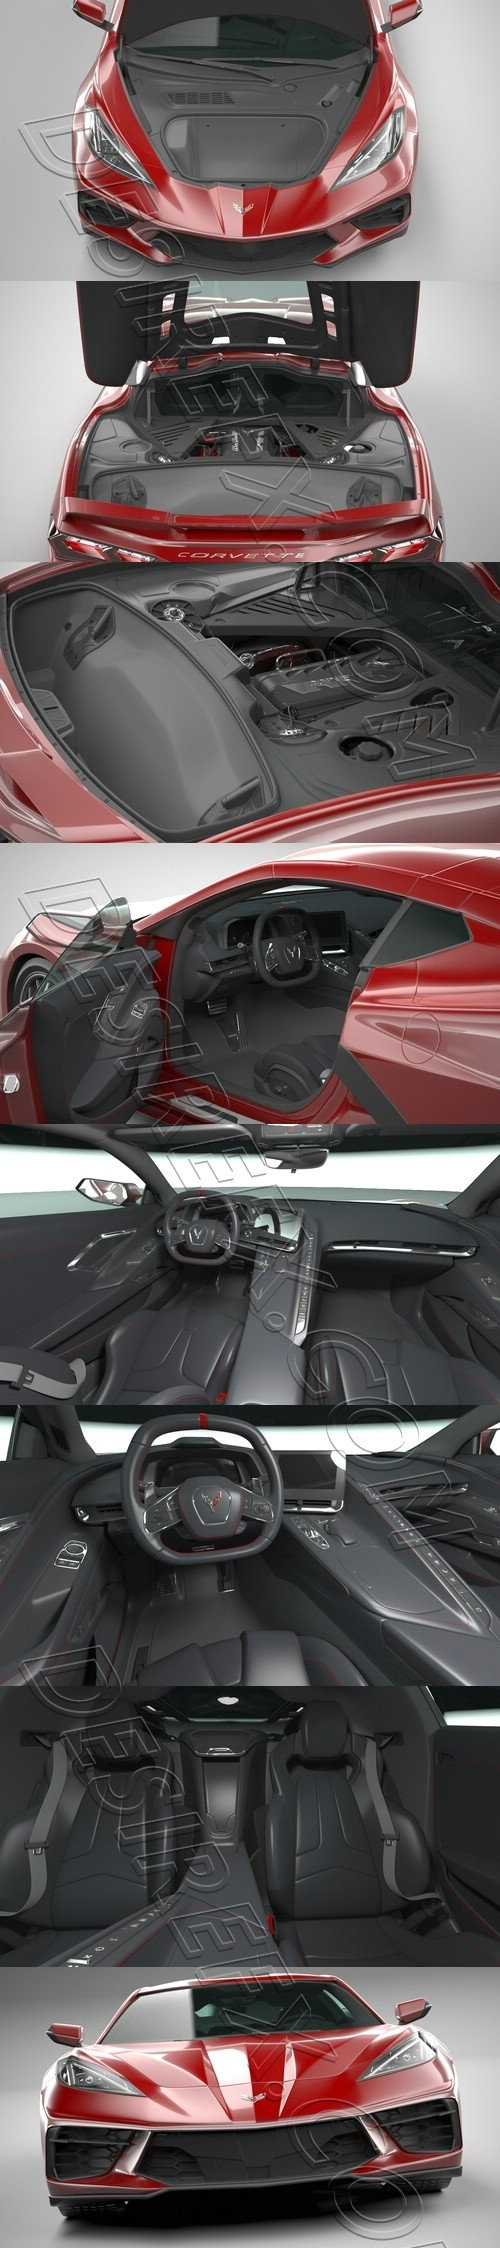 Chevrolet Corvette Stingray with HQ interior and Engine 2020 3D Model